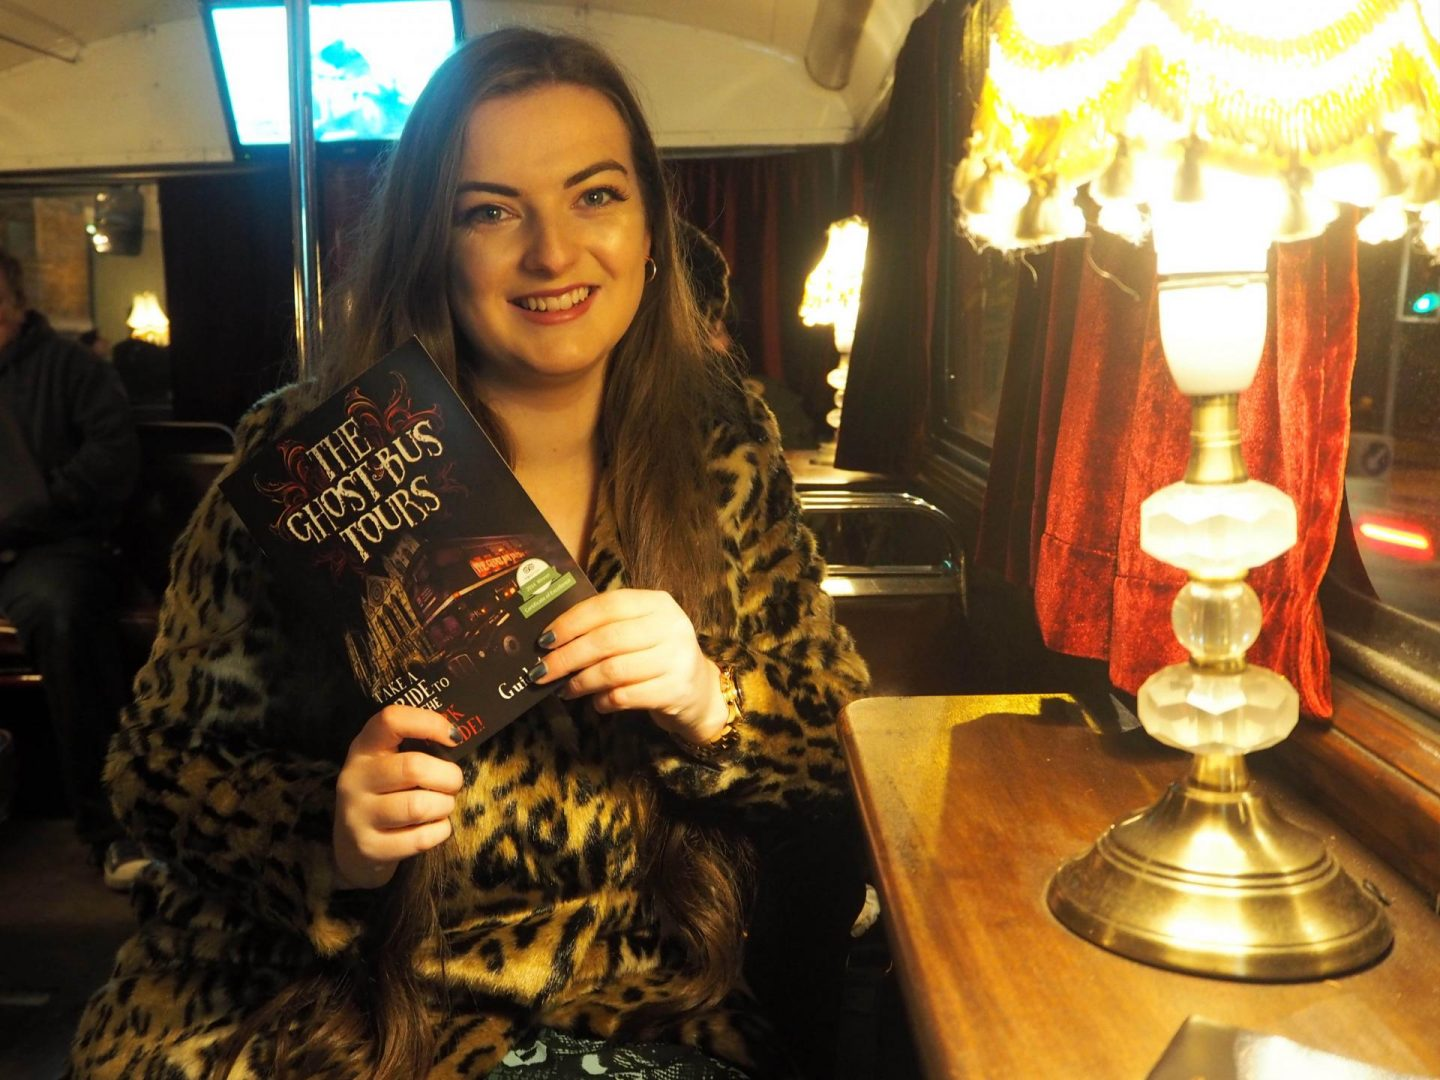 city-adventure-in-york-the-ghost-bus-tour-rachel-nicole-uk-blogger